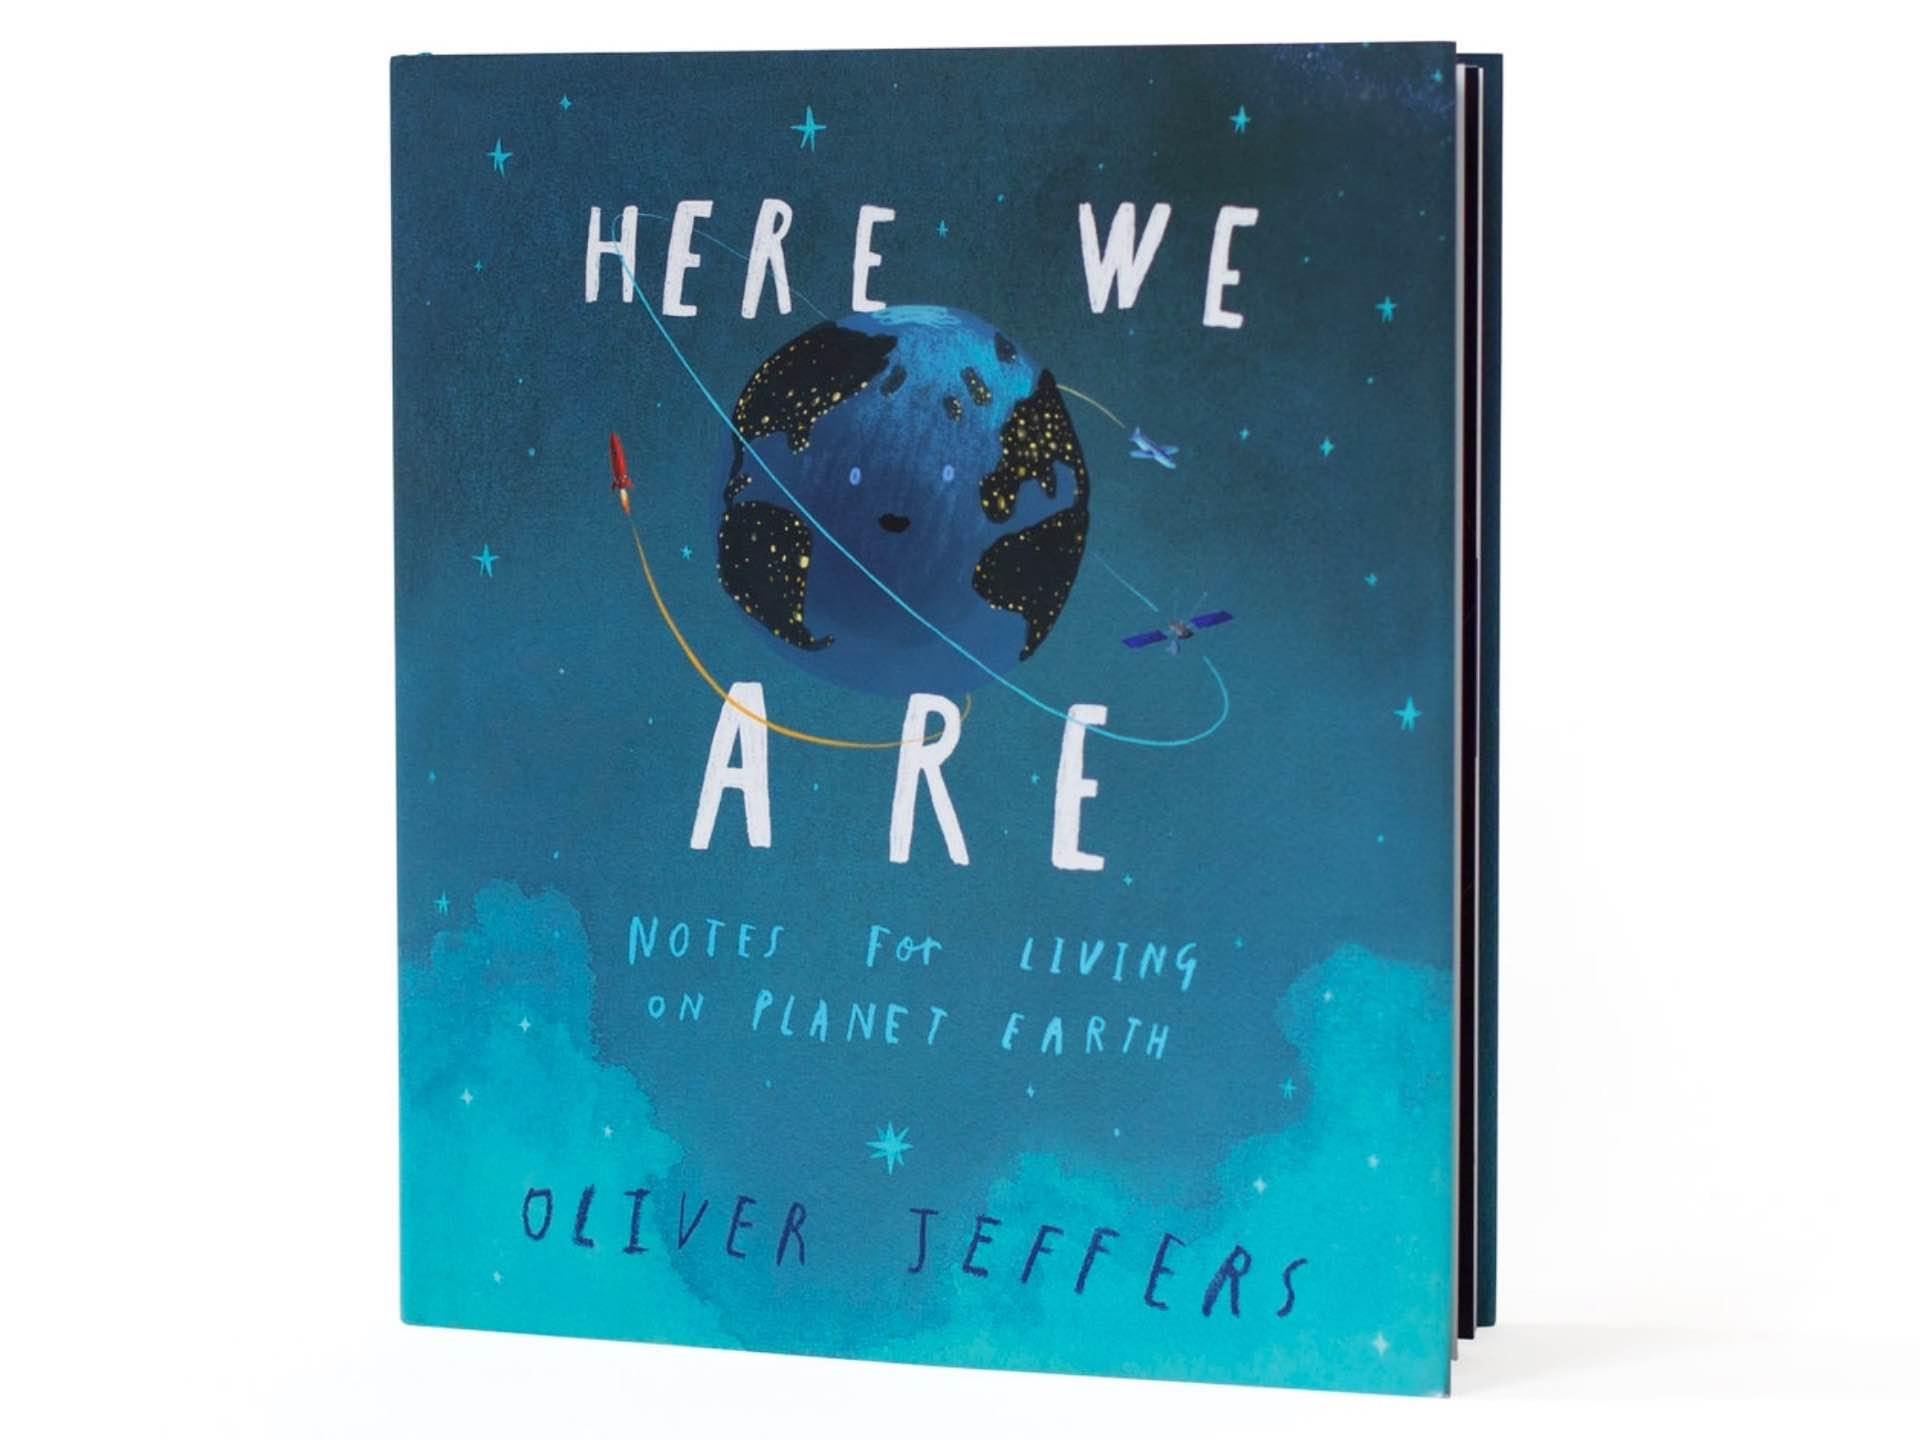 'Here We Are: Notes for Living on Planet Earth' by Oliver Jeffers